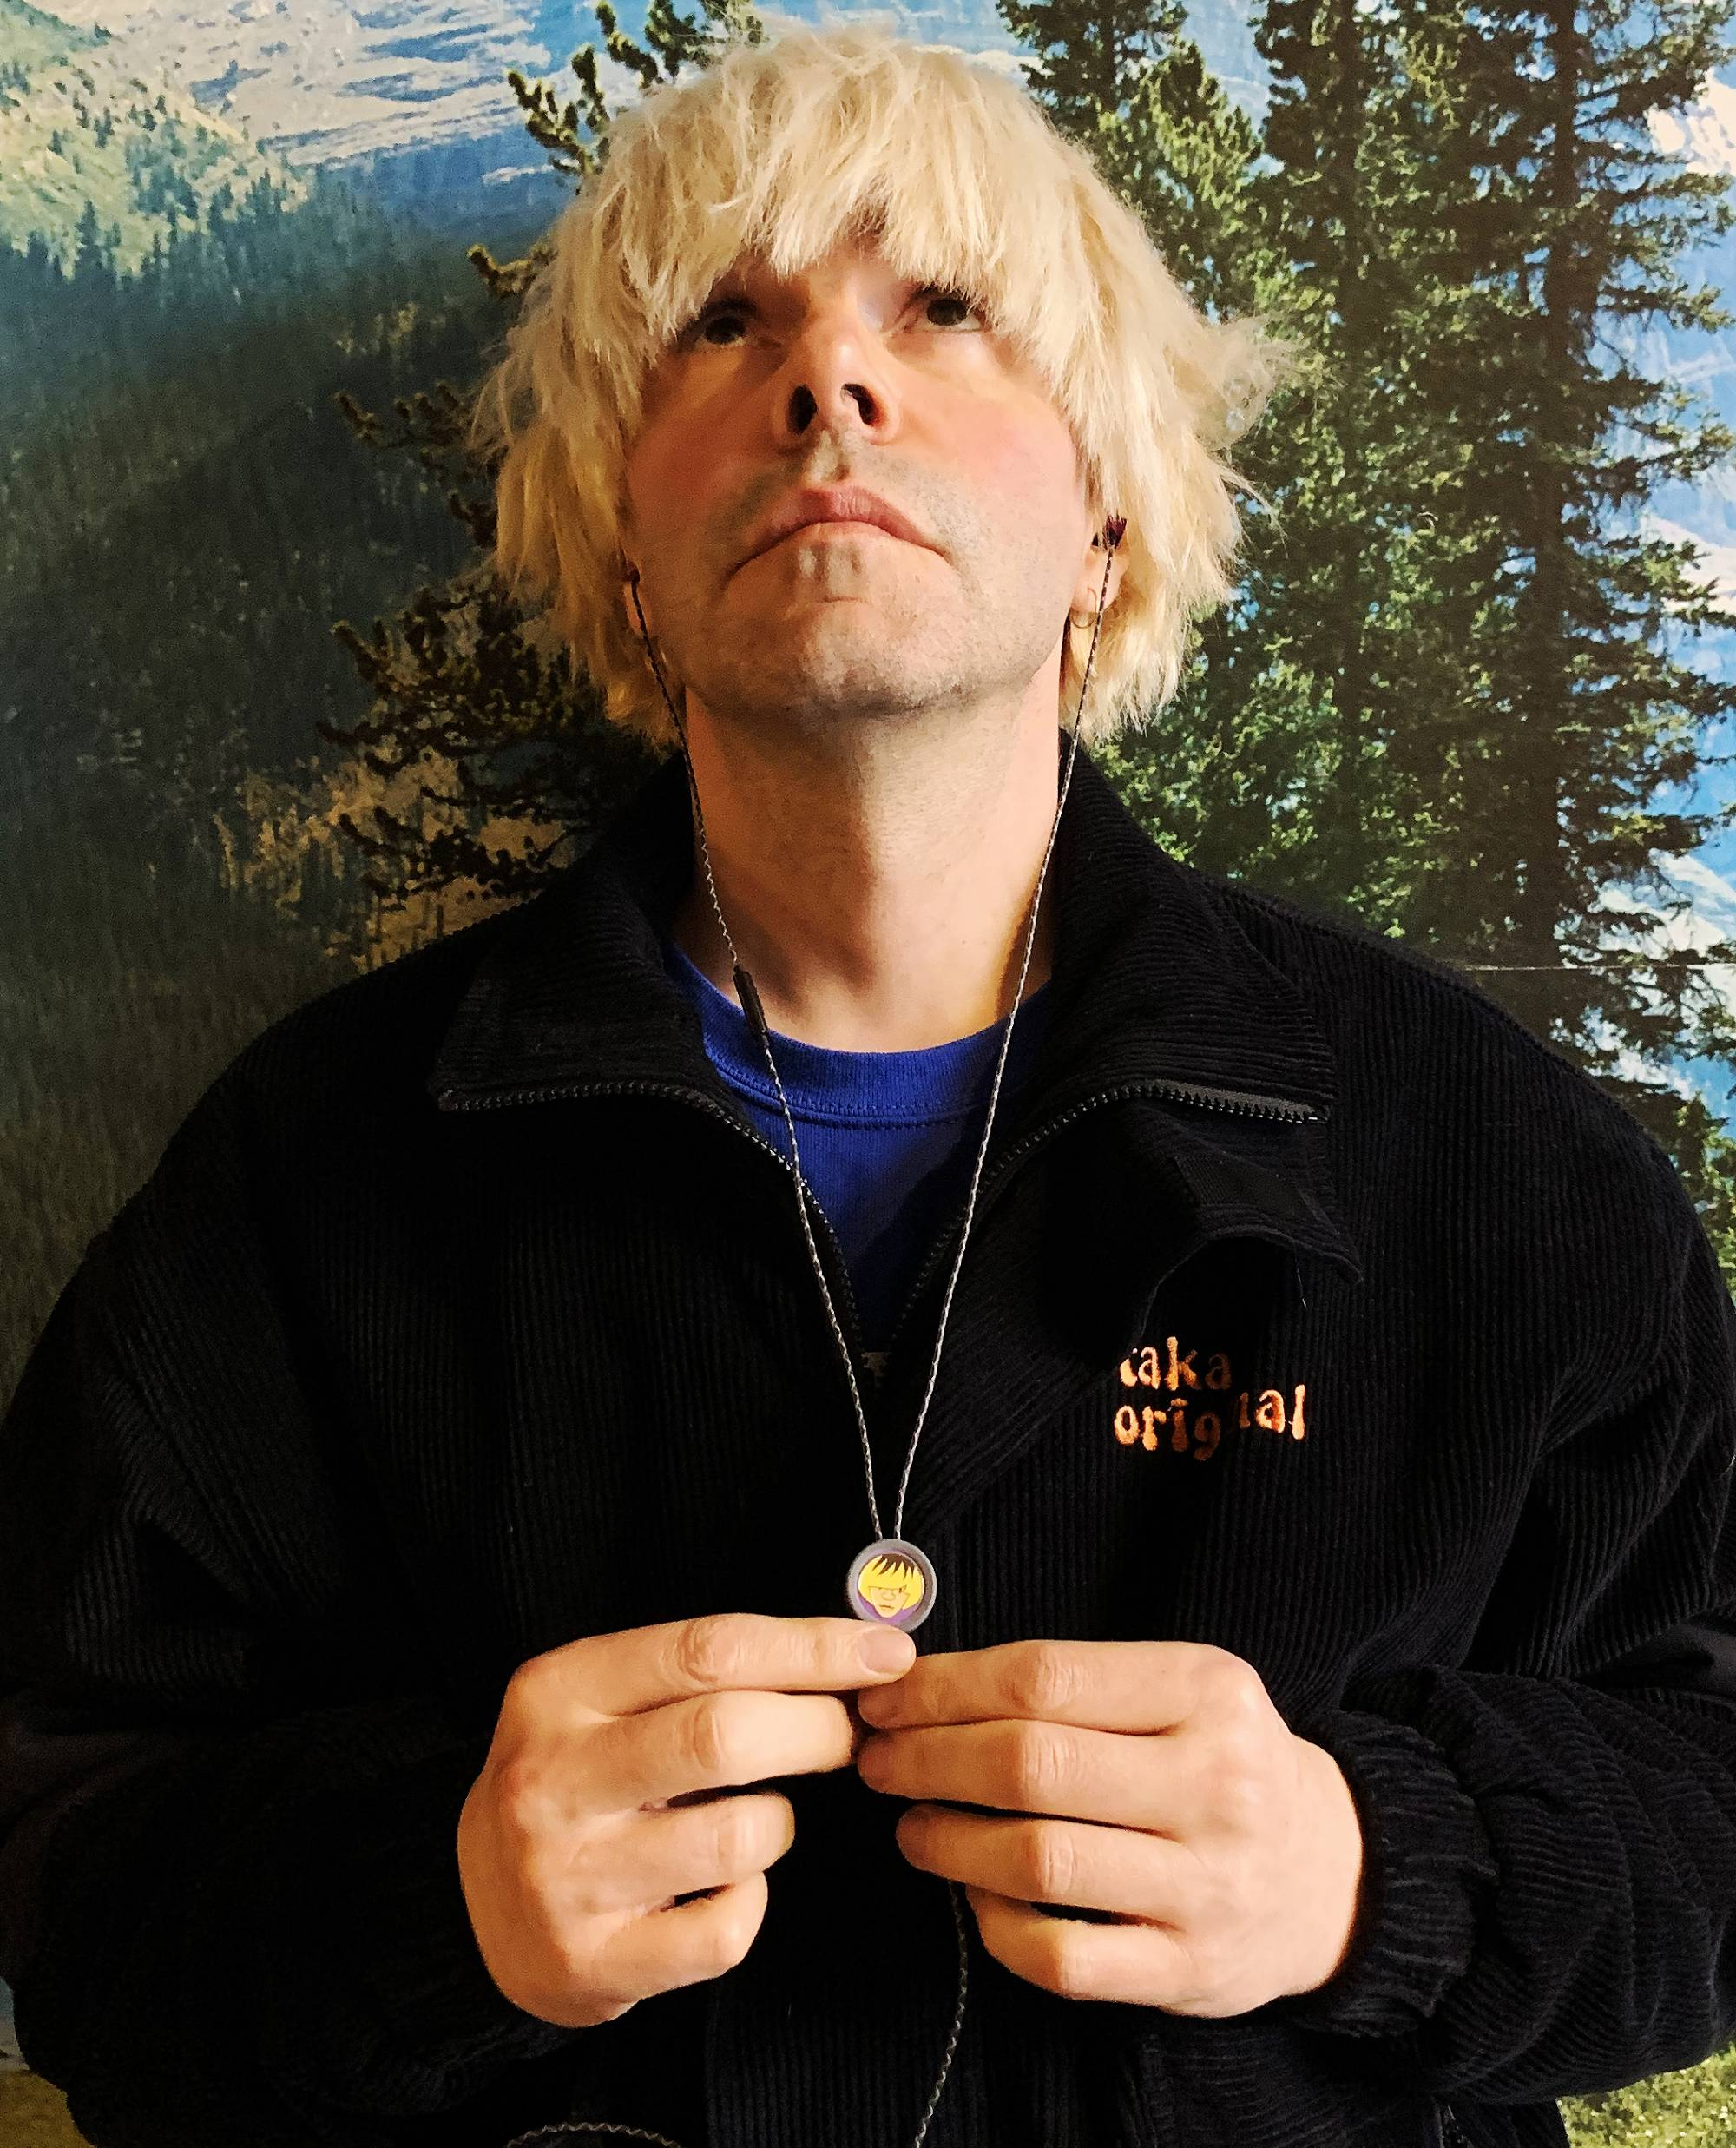 Tim Burgess launches 'Listening Party' earphones to support UK music venues. Credit: Press/Flare